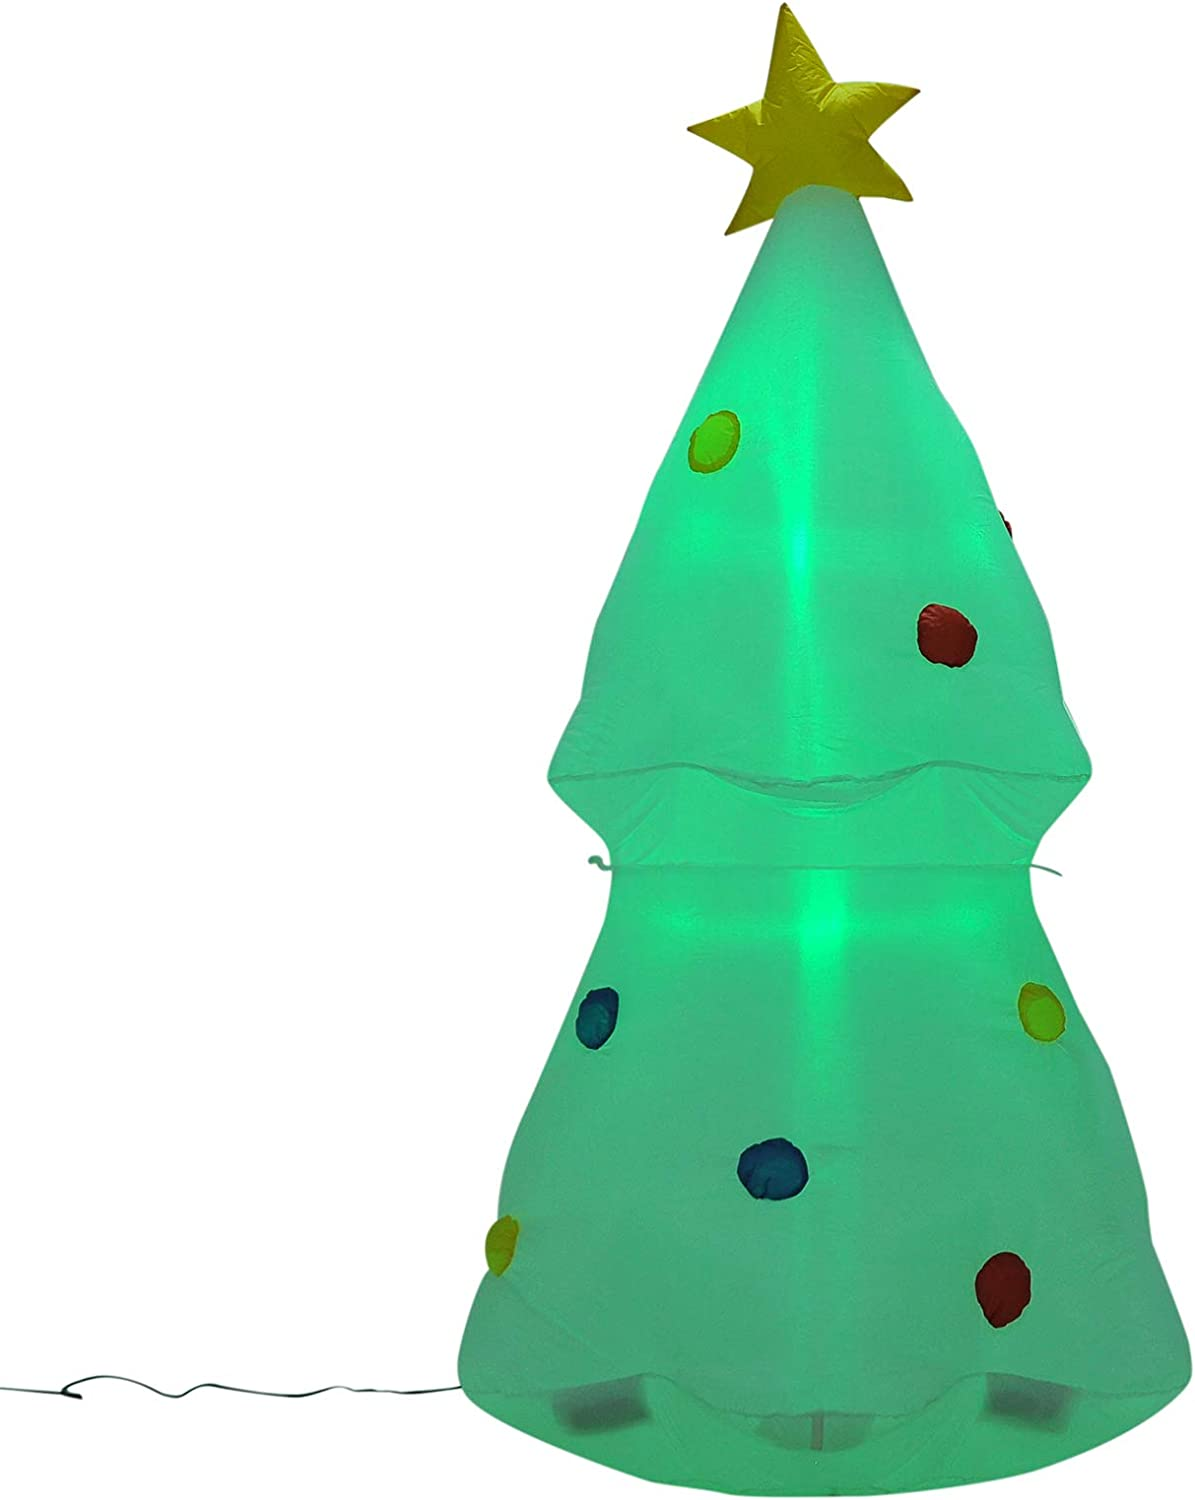 HOMCOM Inflatable Christmas Ranking TOP10 Outdoor Lighted Glo Yard Decoration Max 49% OFF